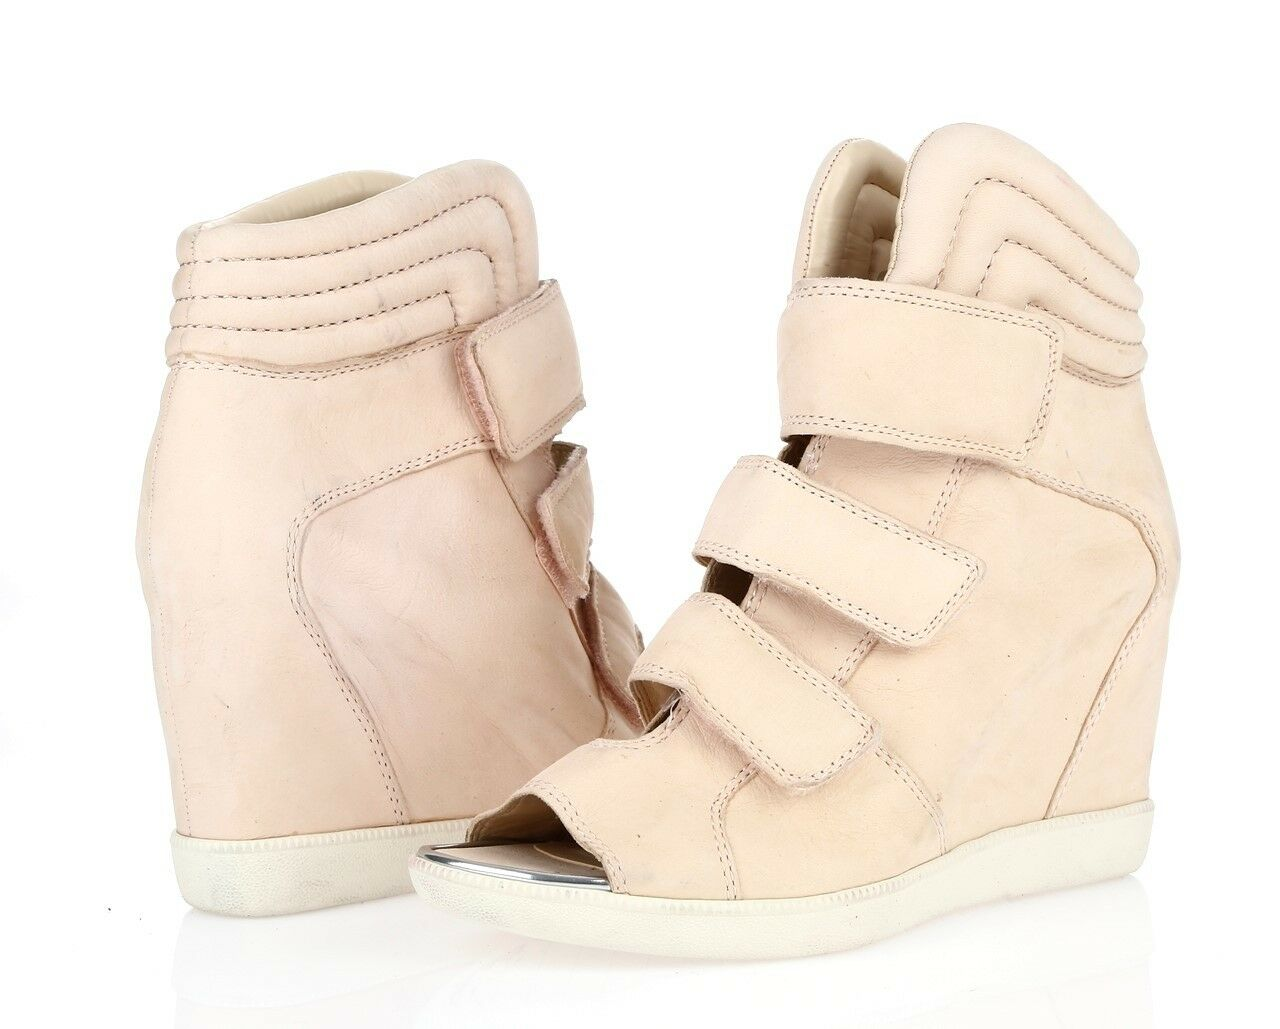 BOUTIQUE 9 BTNERINE peach leather open toe     high top wedges sz. 9.5 M NEW a6321f